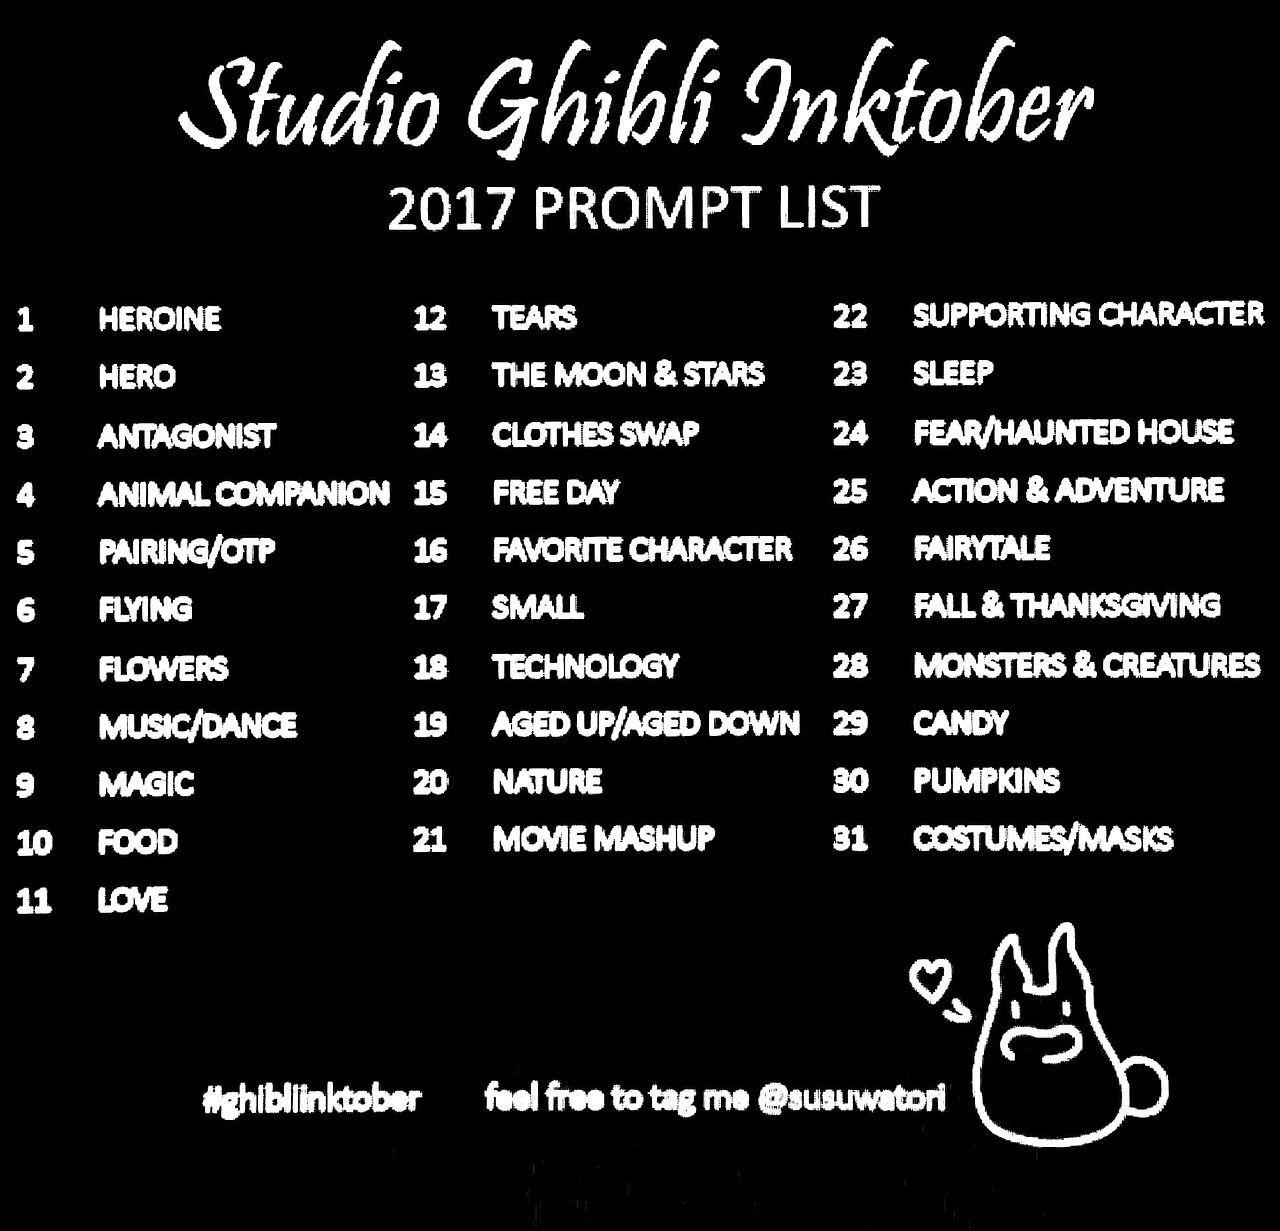 ☆ Studio Ghibli ☆: Photo #drawingprompts It's that time of year again! I made a prompt list that you can follow, and I will try to draw along I...